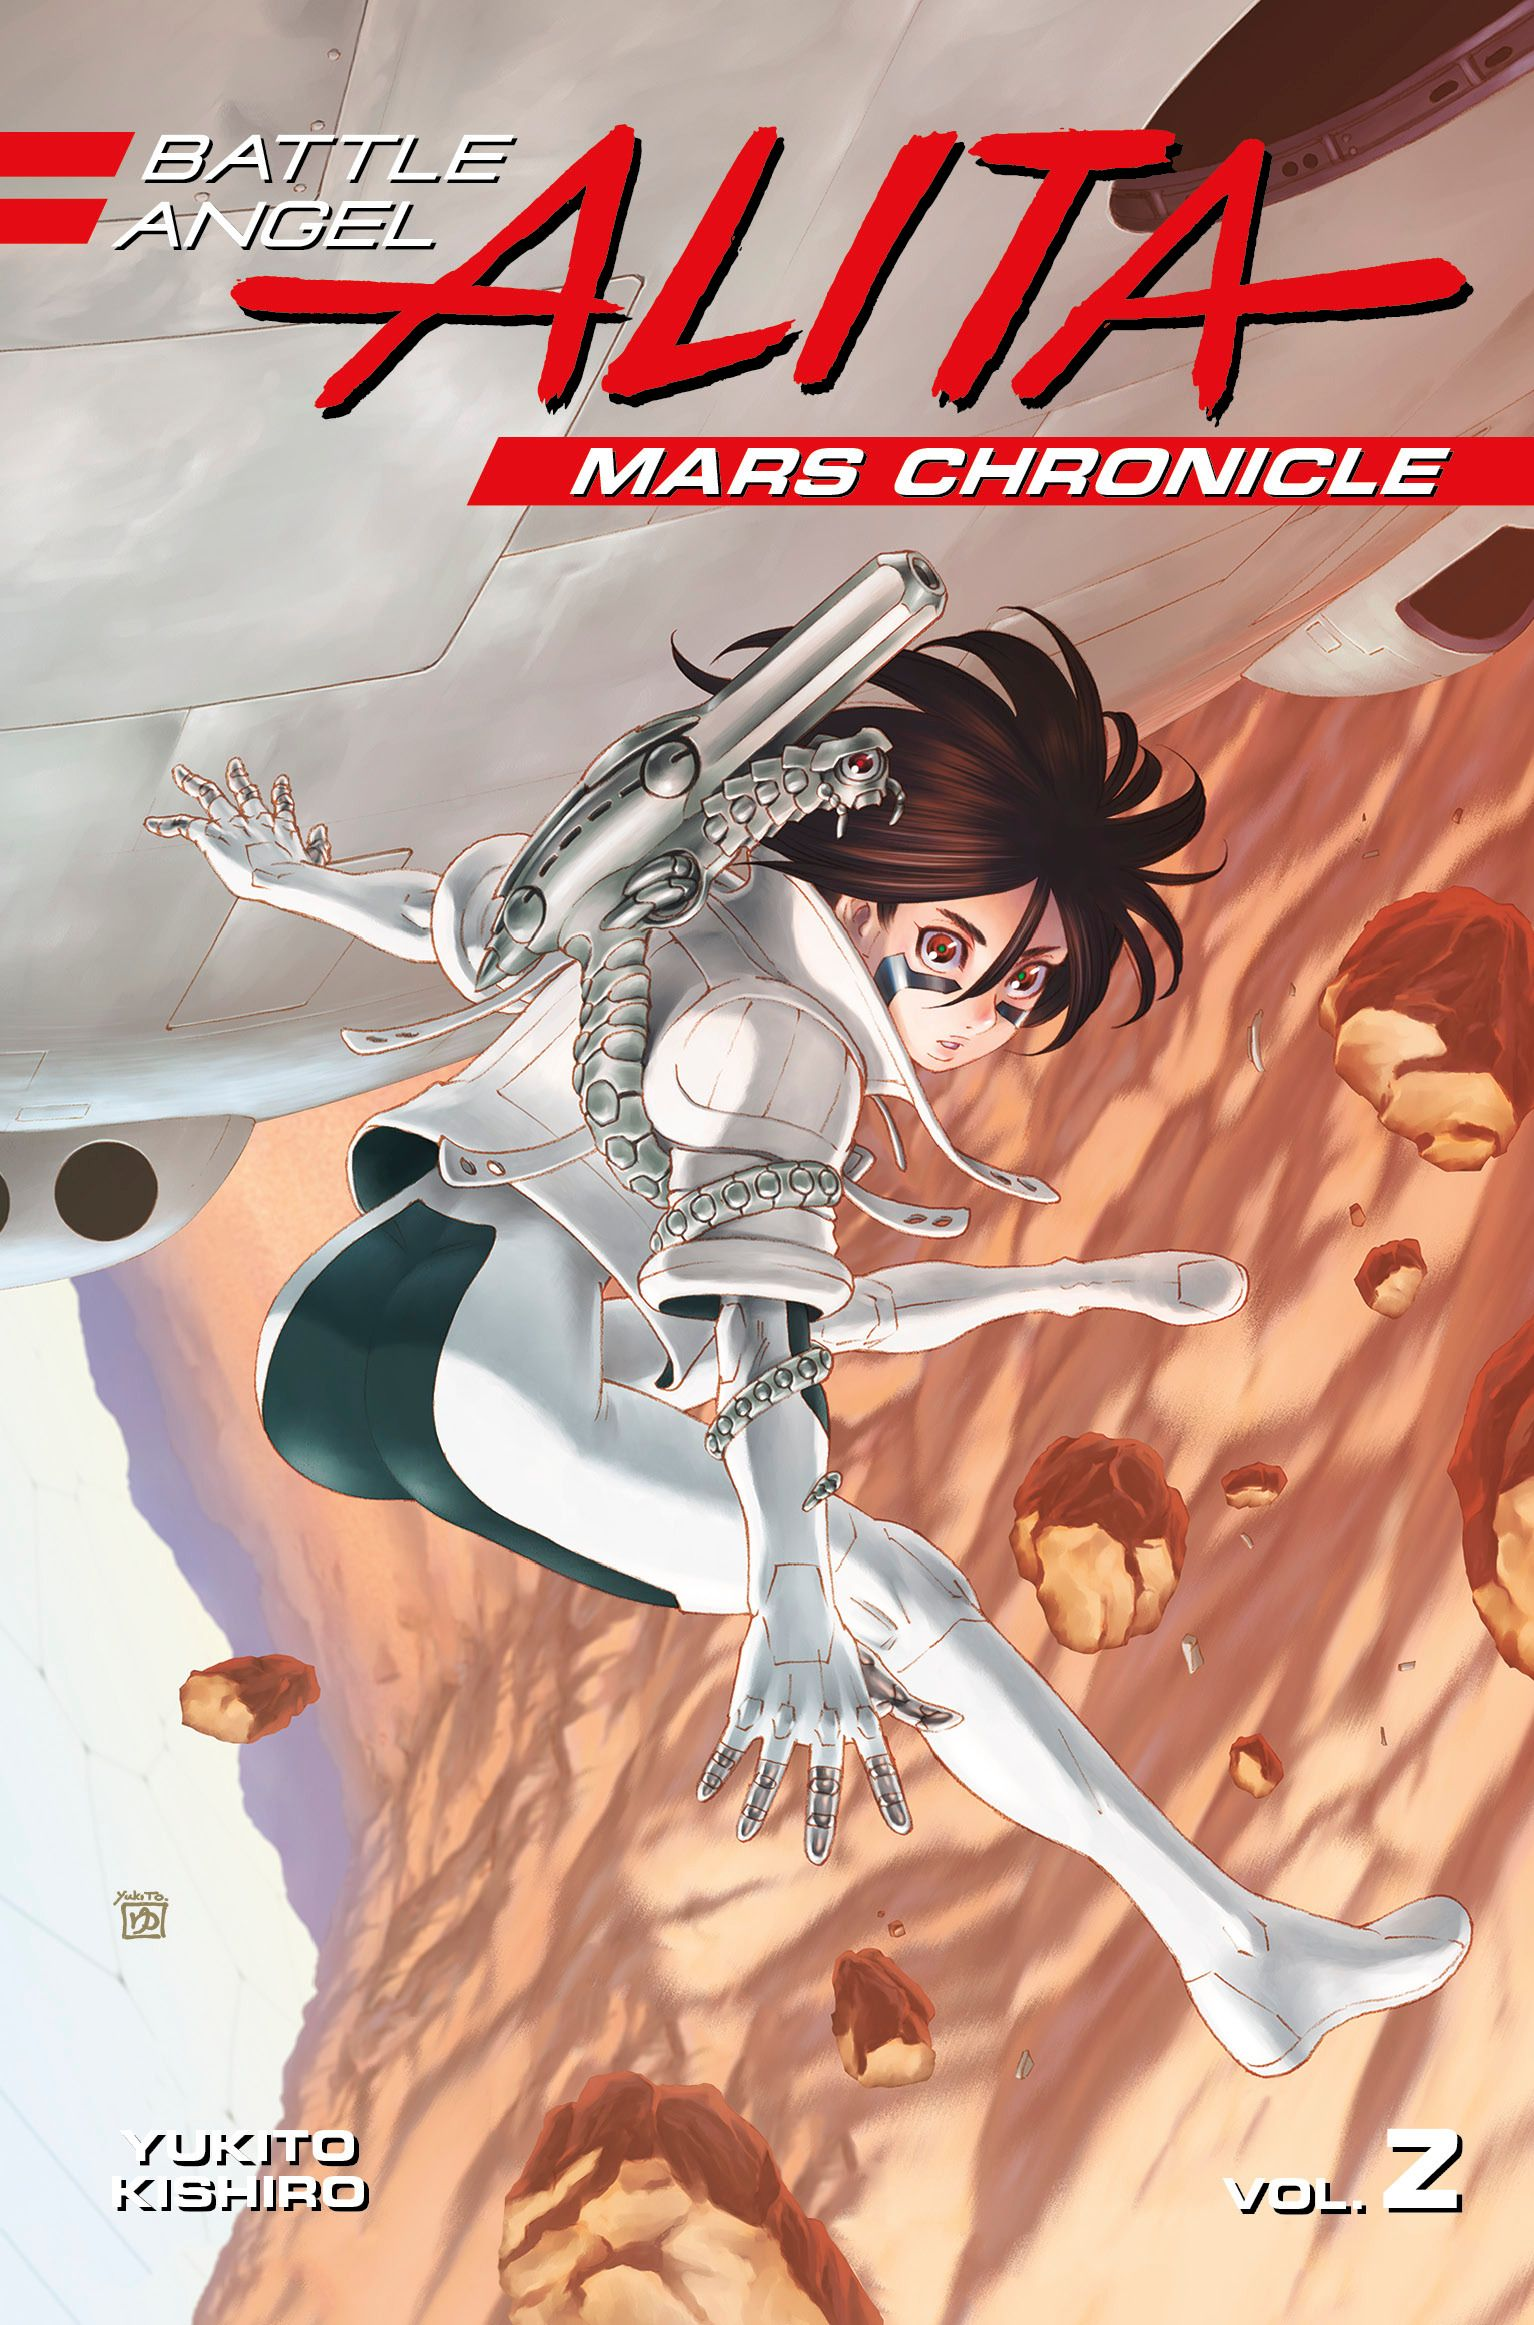 Alita Battle Angel Read The Manga For Free Alita Battle Angel Manga Angel Manga Battle Angel Alita